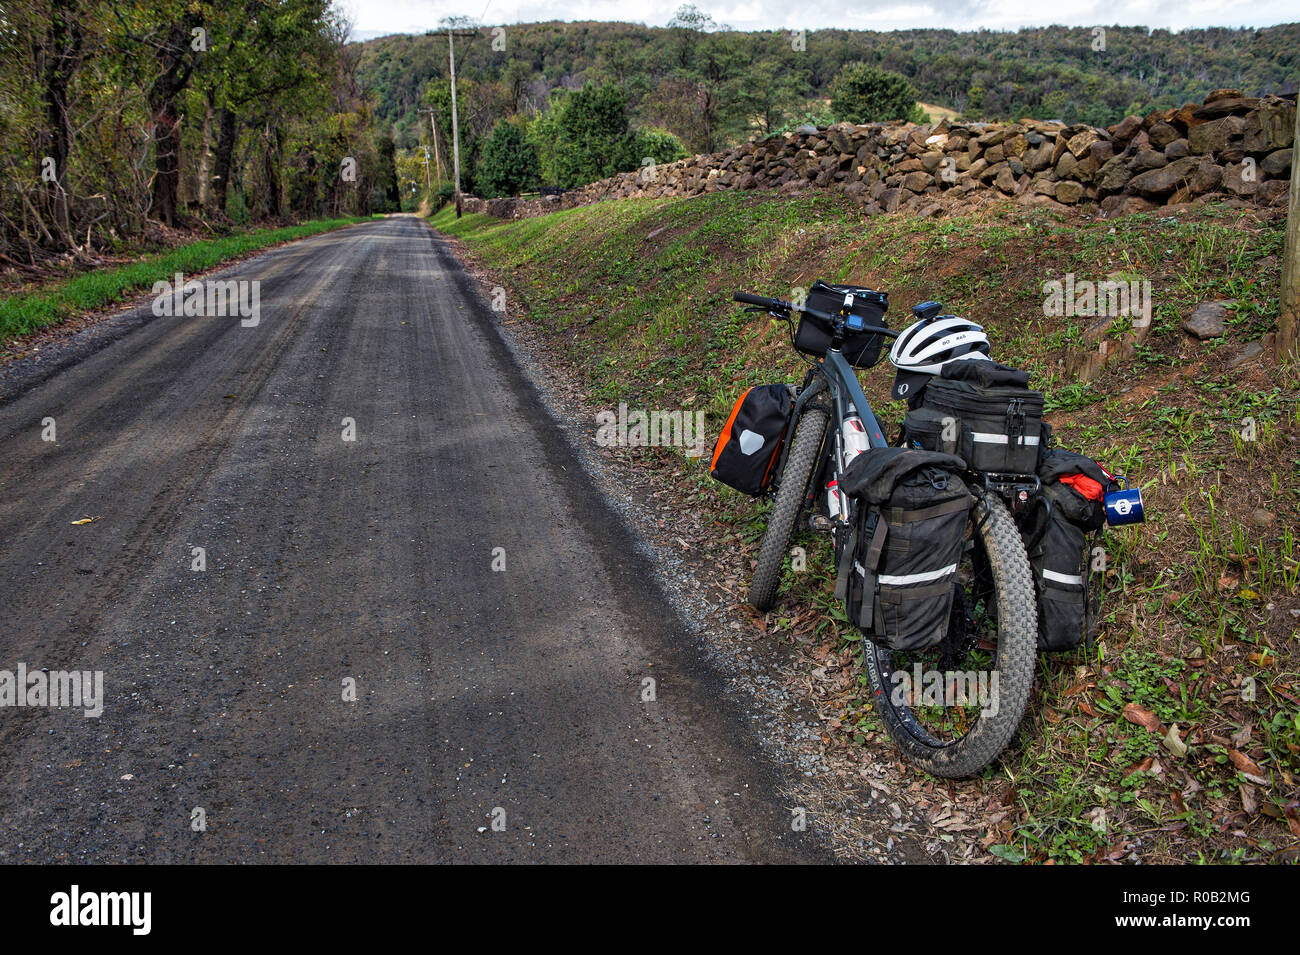 UNITED STATES - June 4, 2017: A loaded touring bicycle on Western Loudoun's historic dirt road known as Trappe Road outside of the Village of Bloomfie - Stock Image